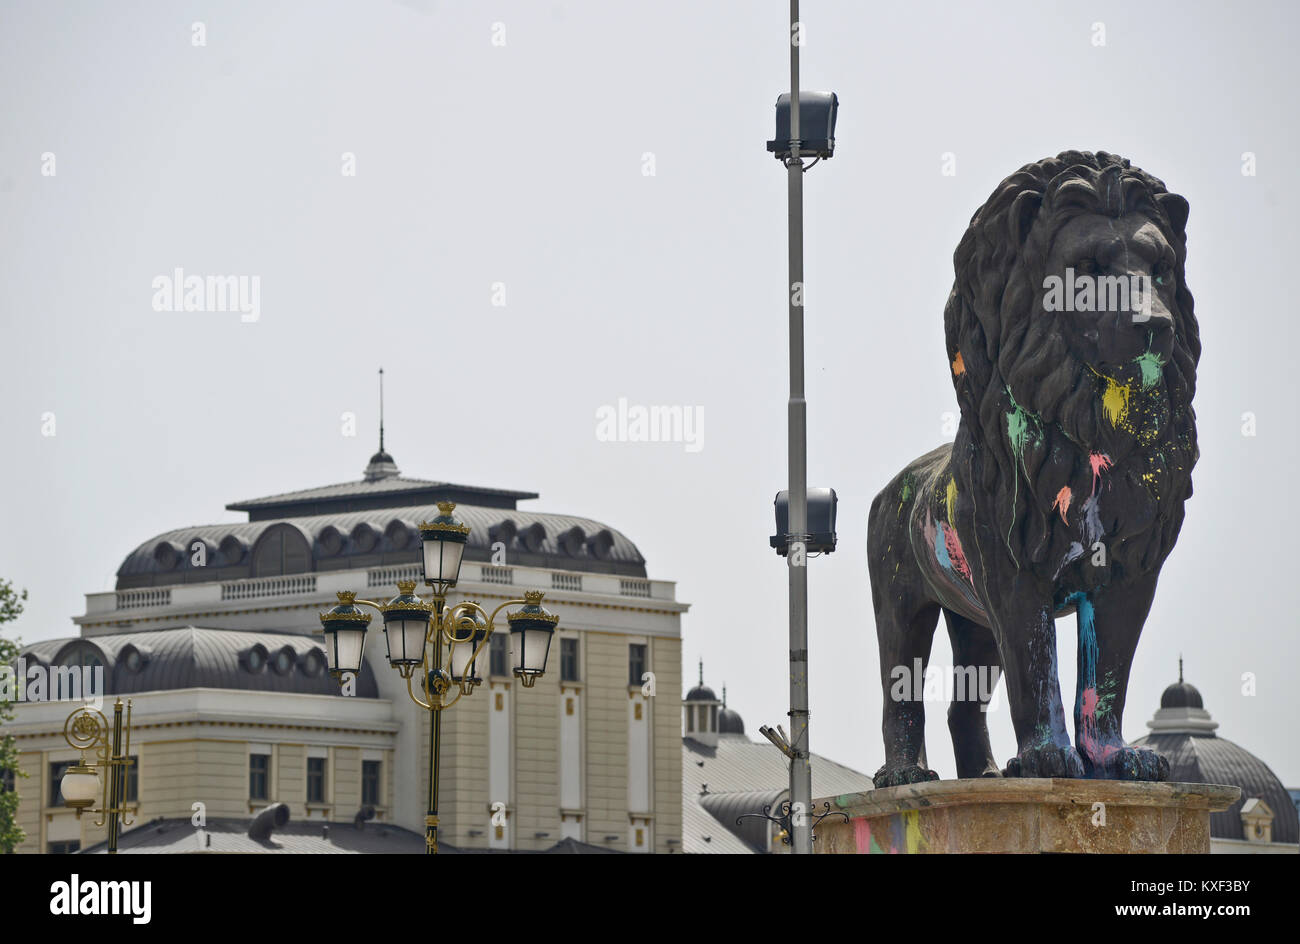 A lion statue vandalized by protesters. Skopje, Macedonia - Stock Image